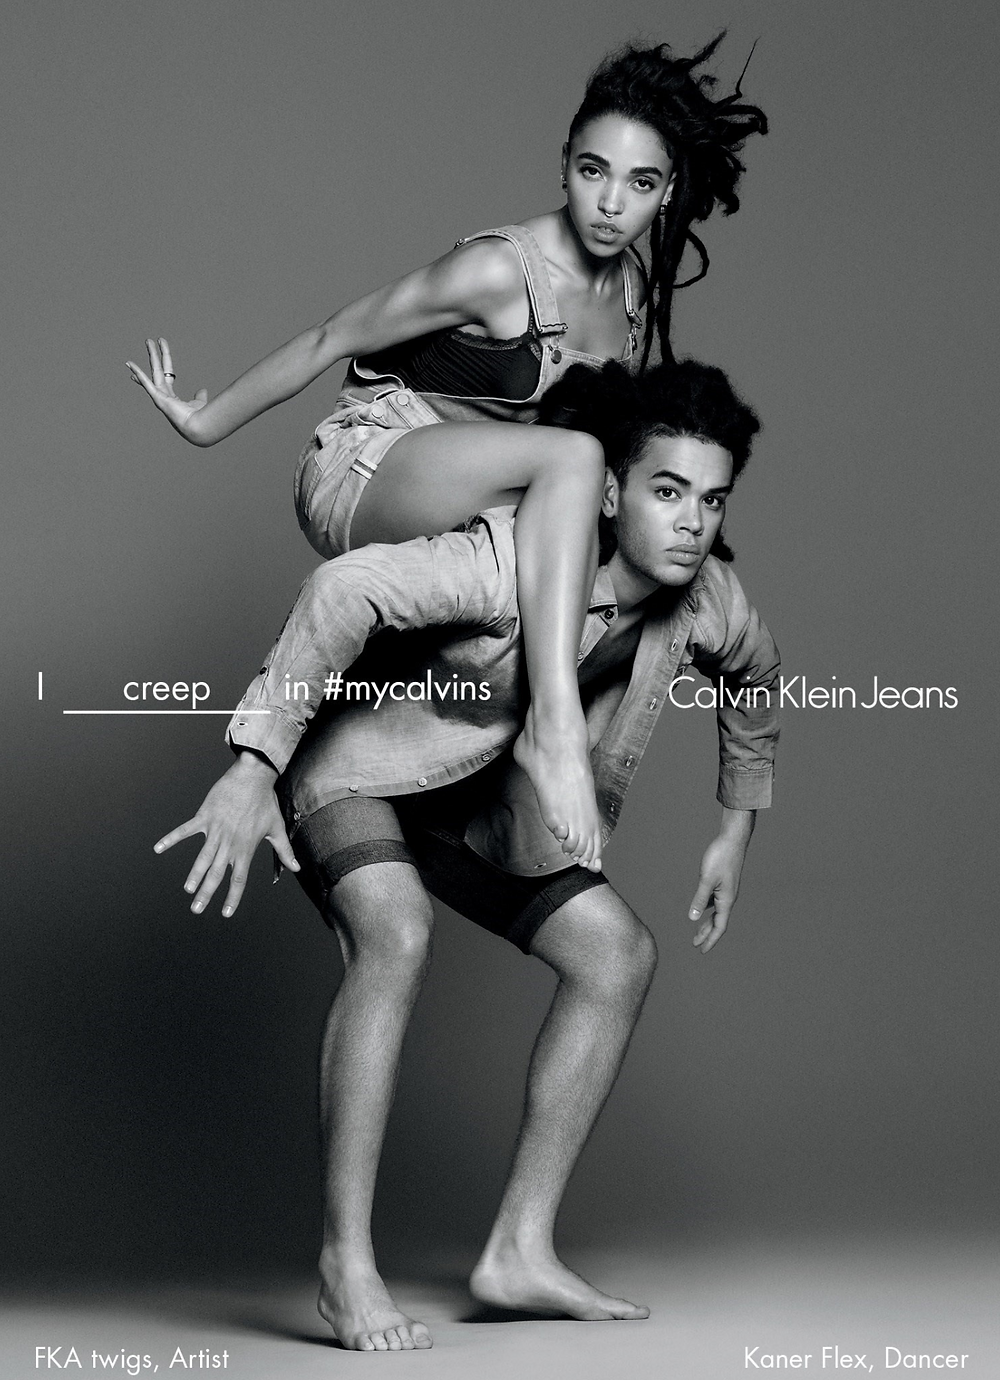 FKA Twigs for Calvin Klein Jeans S/S '16